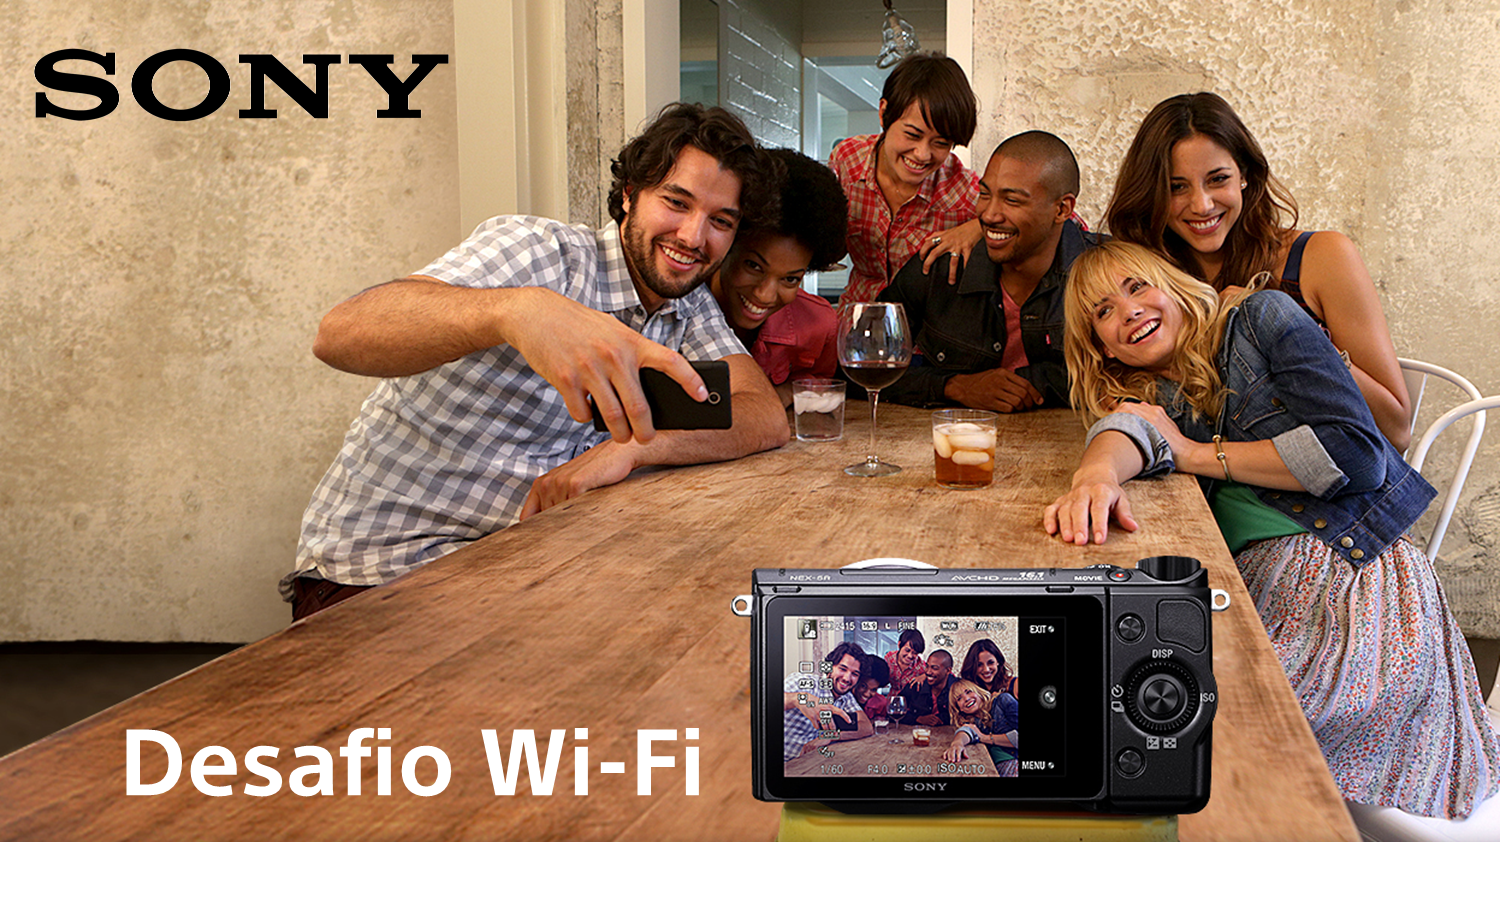 sonydesafiowifi